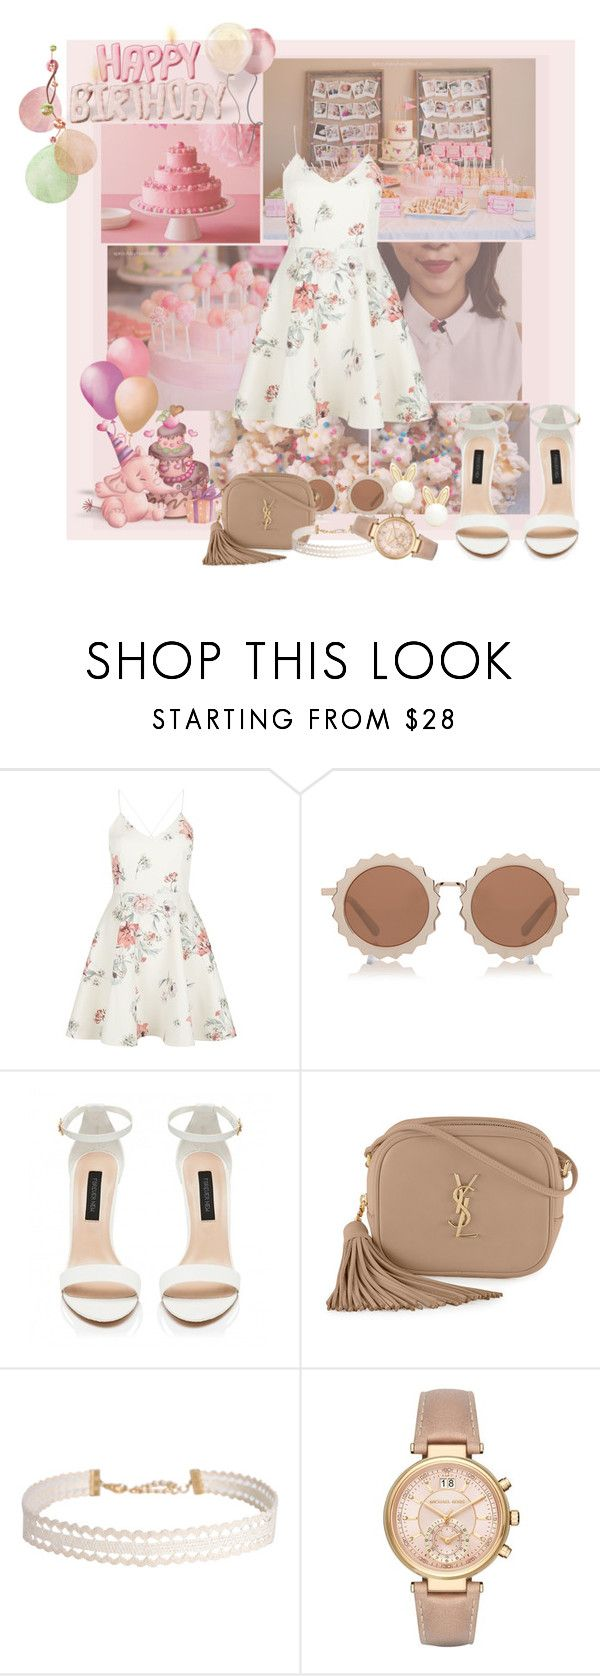 """""""May's child"""" by nicolepuppy ❤ liked on Polyvore featuring New Look, House of Holland, Yves Saint Laurent, Humble Chic, Michael Kors and Lipsy"""